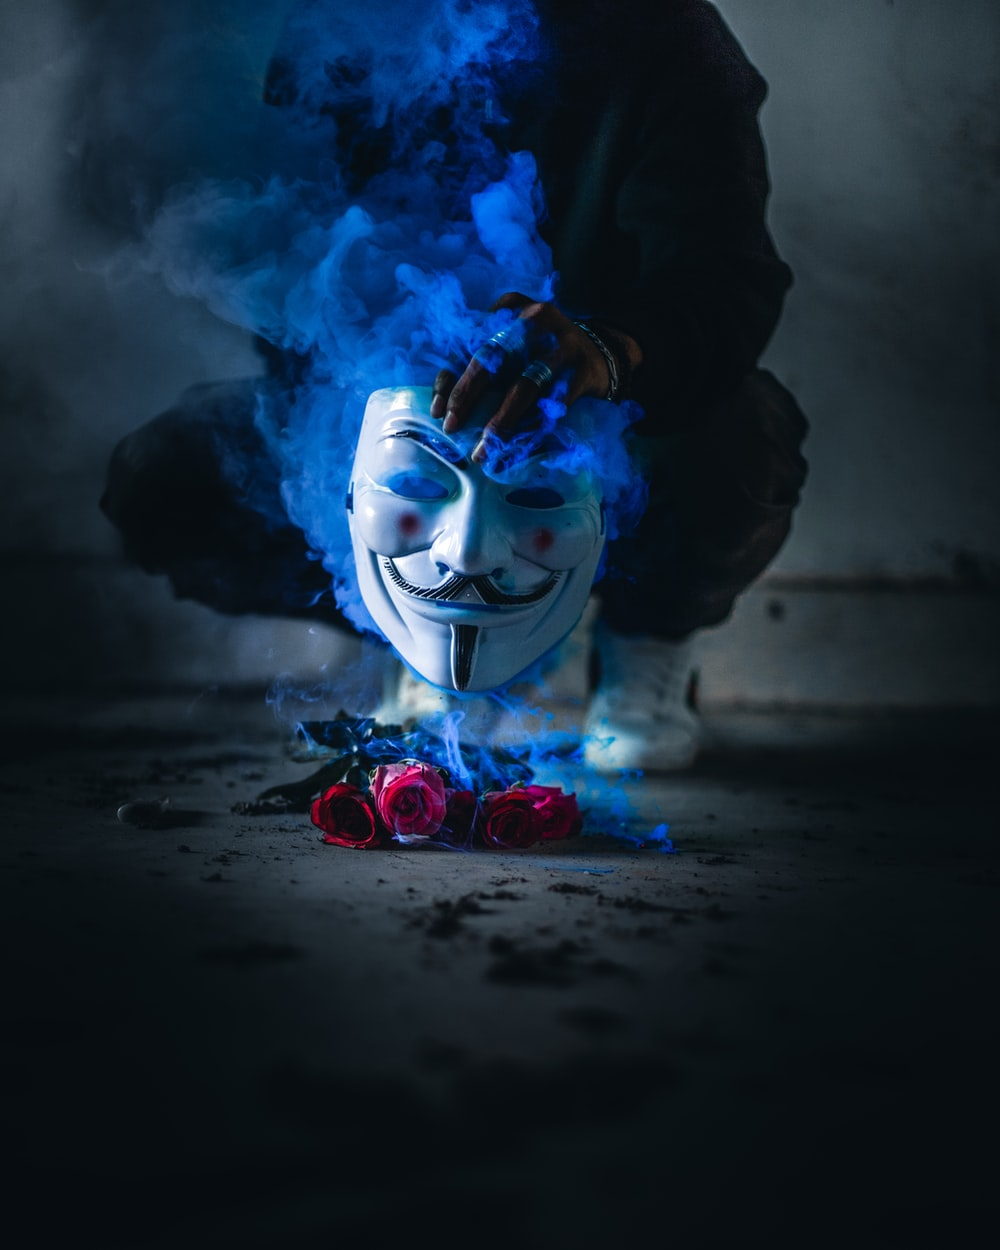 person holding Guy Fawkes mask above smoking red roses